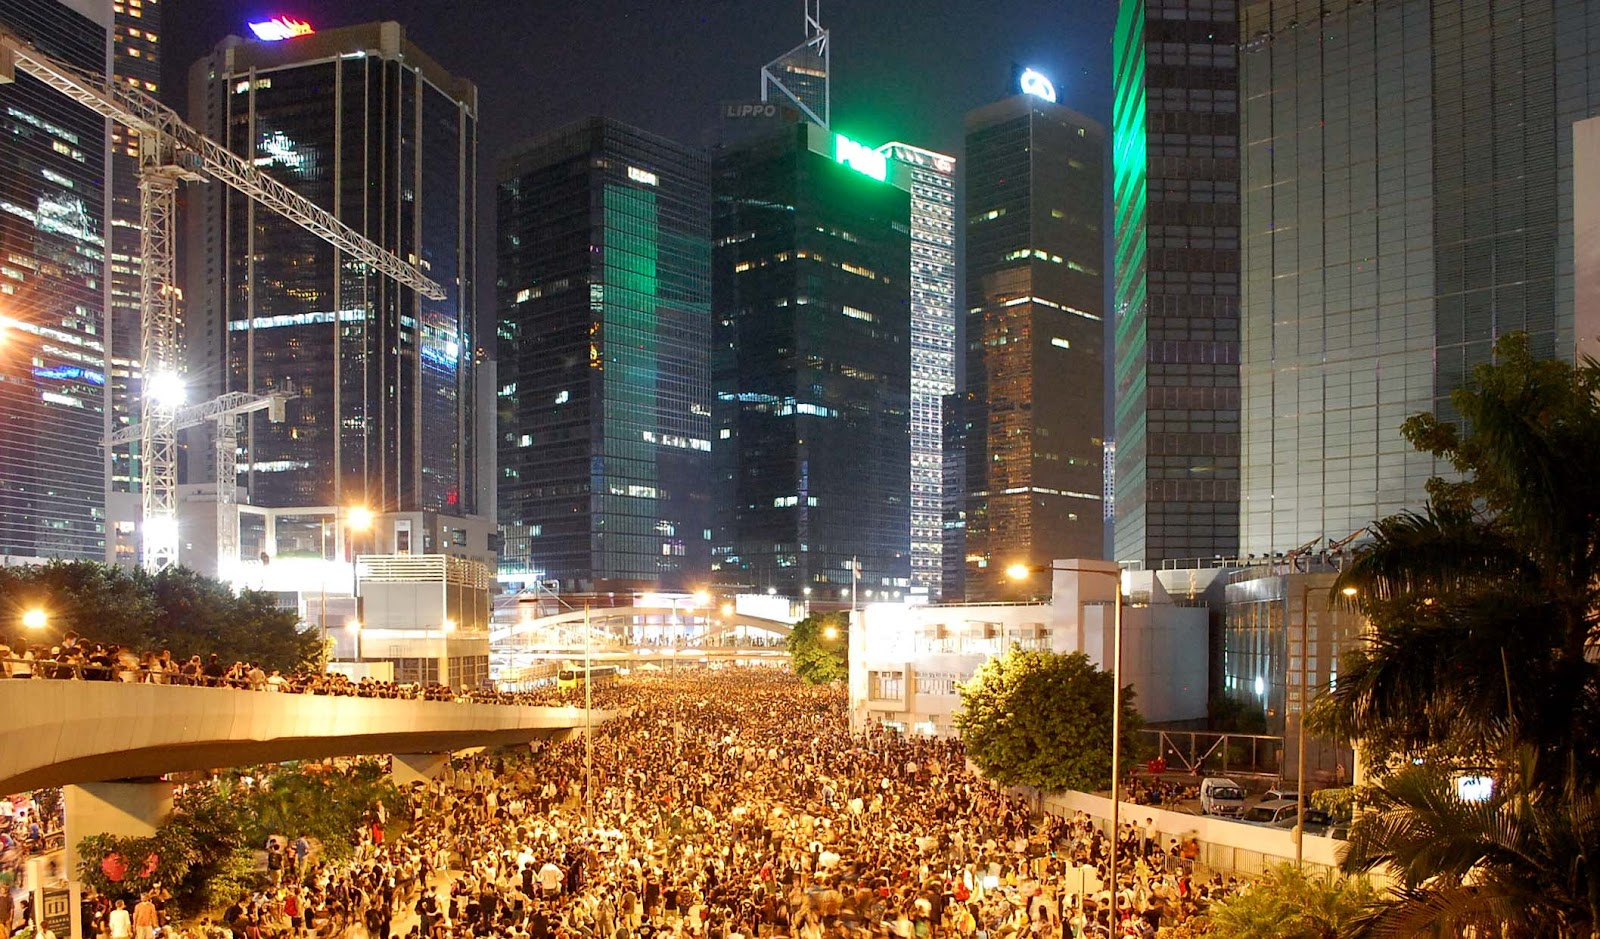 29.9.14_Hong_Kong_protest_near_Tamar.jpg